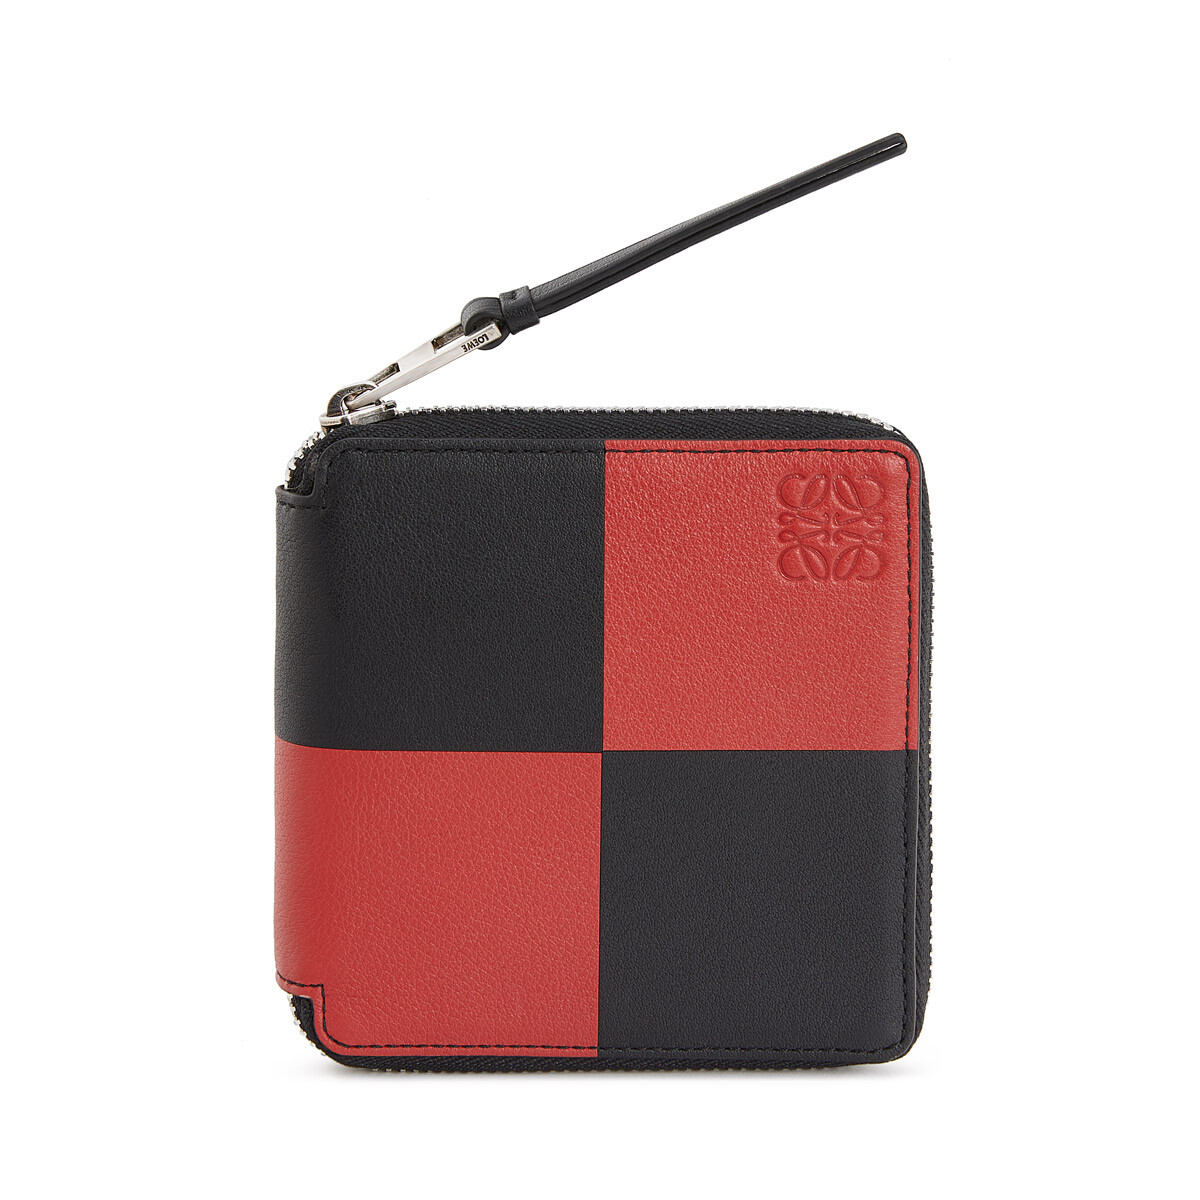 LOEWE Square Zip Wallet Bicolor Black/Red front